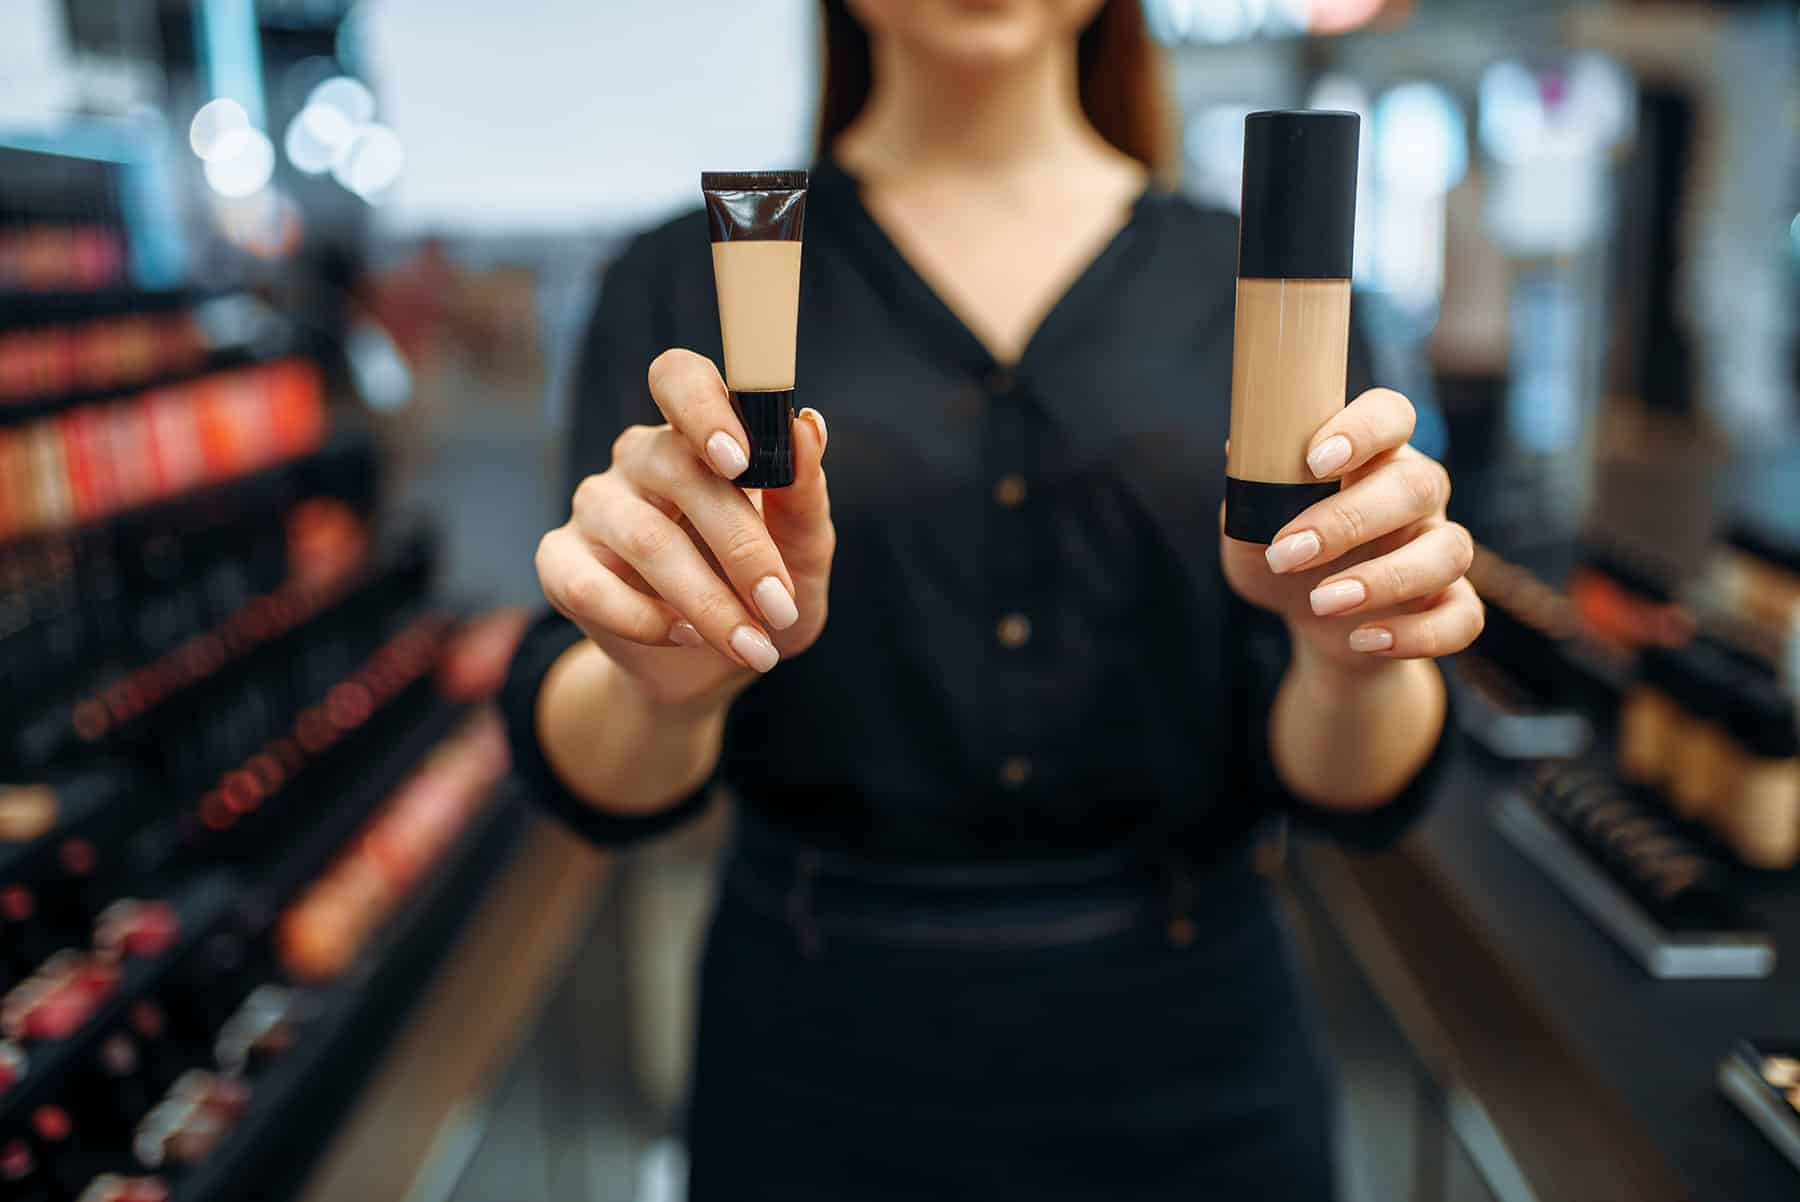 Money saving guide to make-up and beauty: Supermarkets & Drugstores vs Luxury Brands